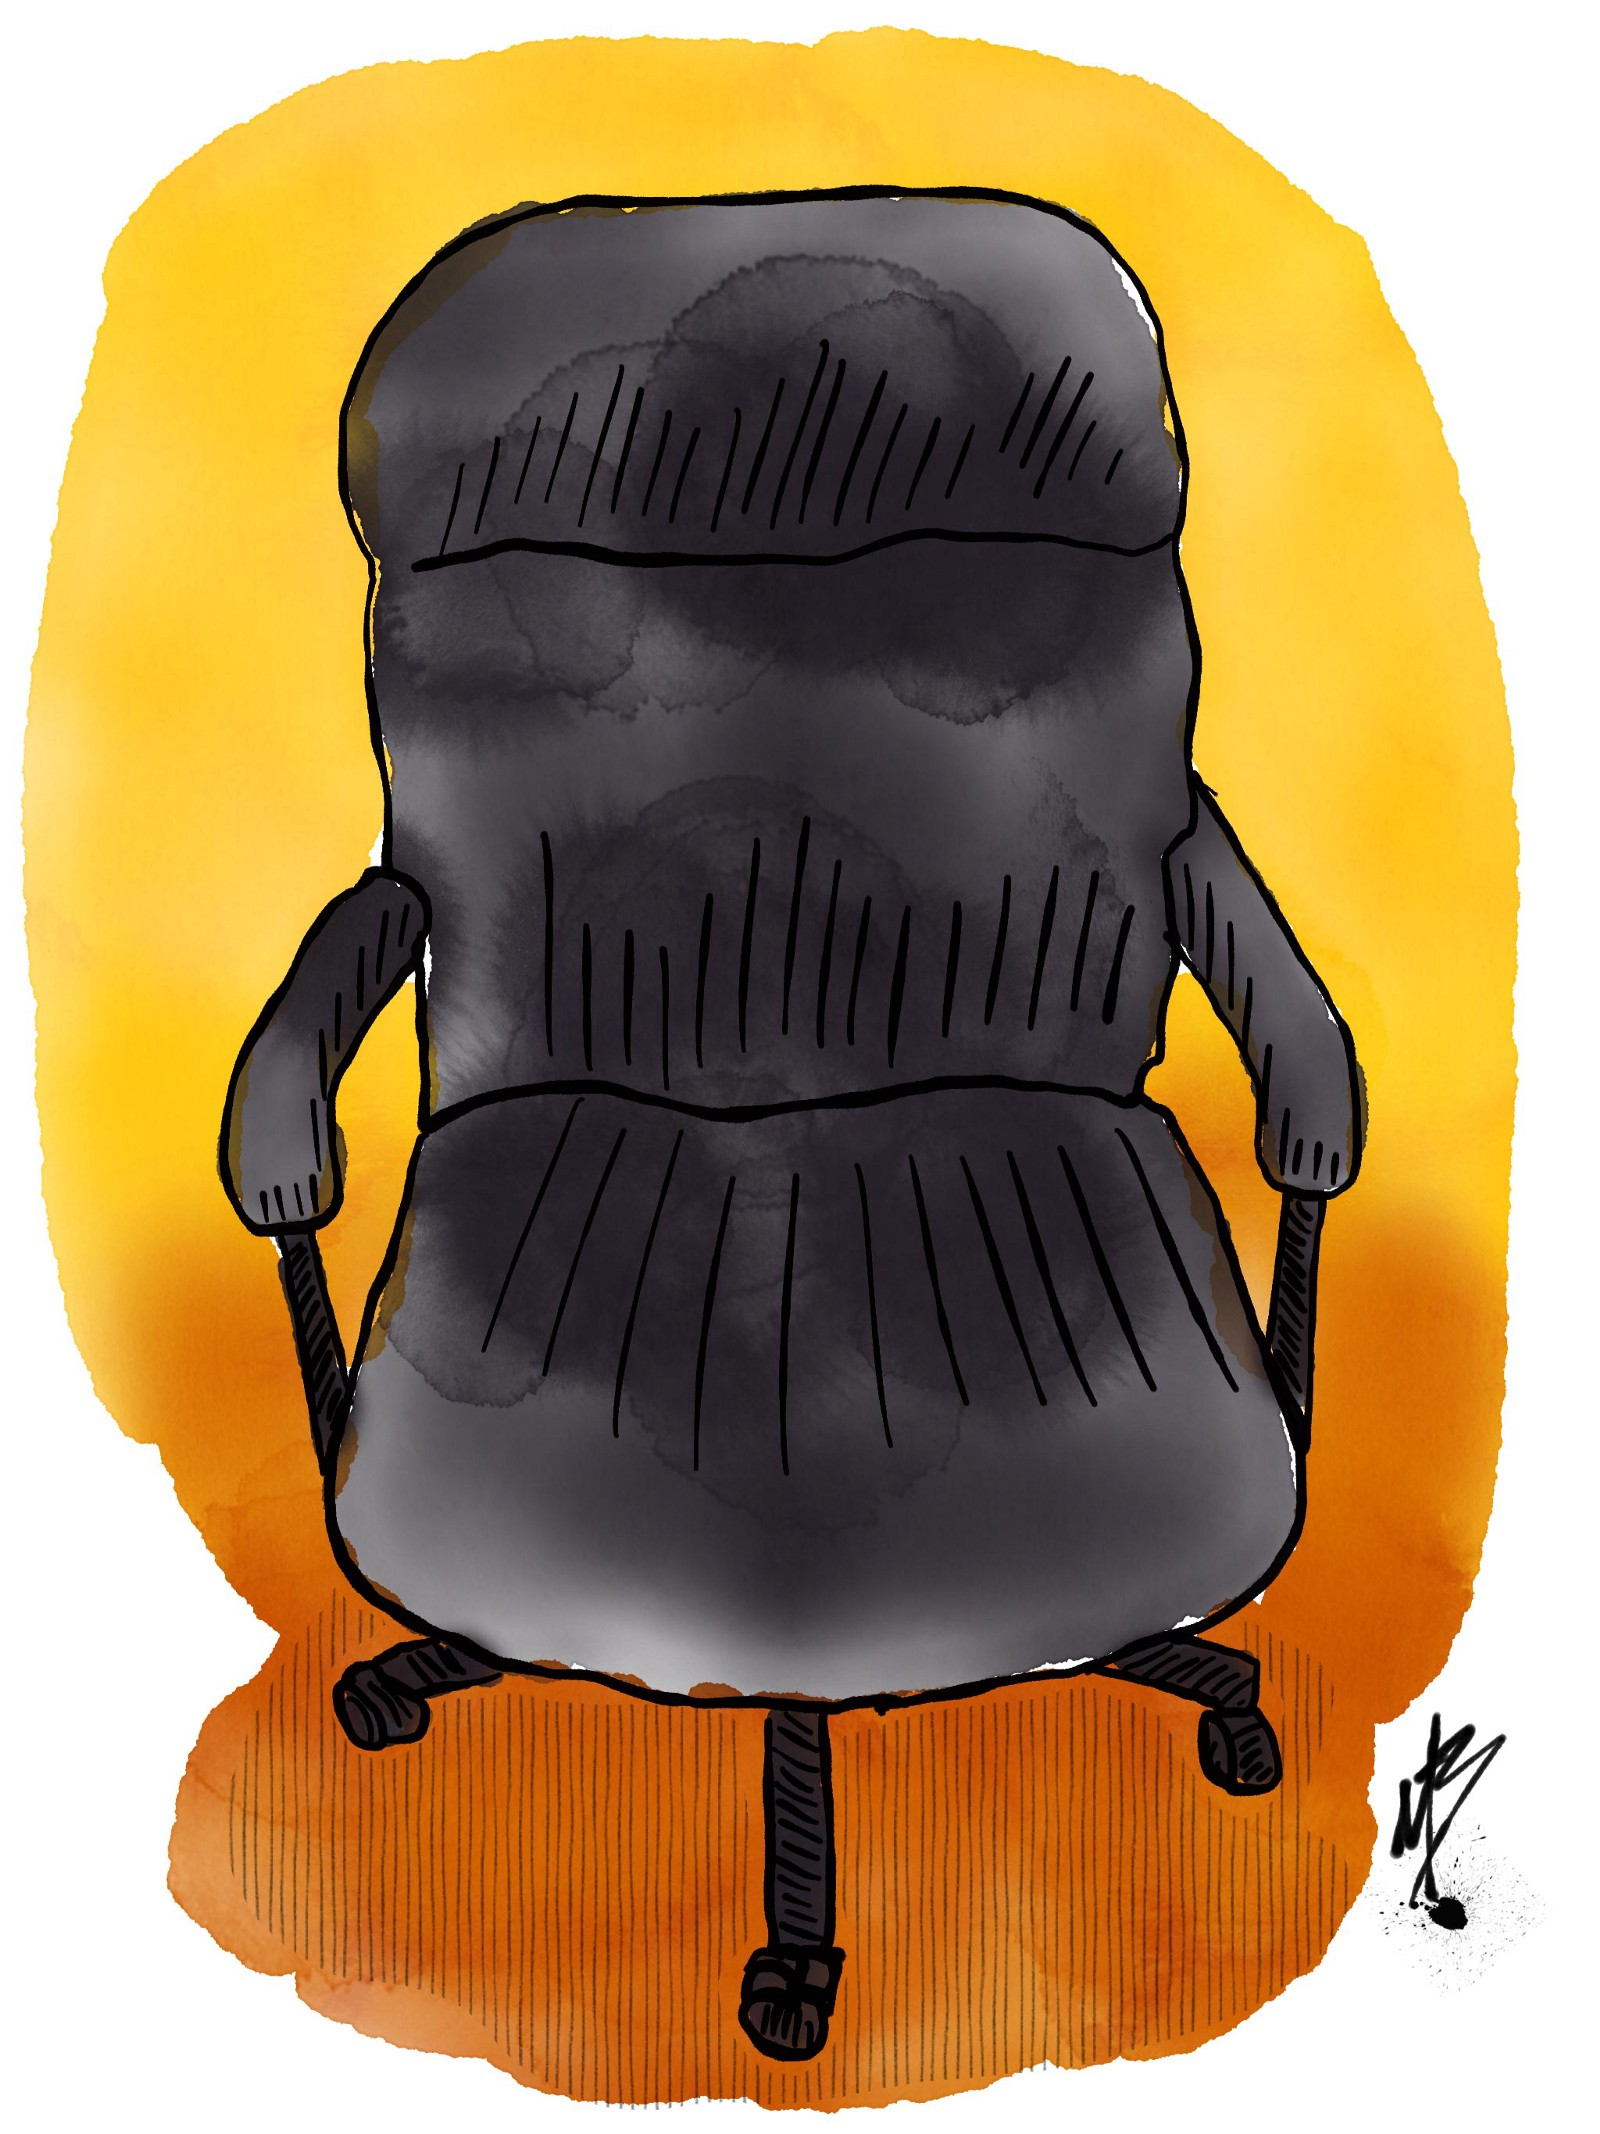 Office Chairs Near Me Life Lessons From A Home Office Chair Art Marketing